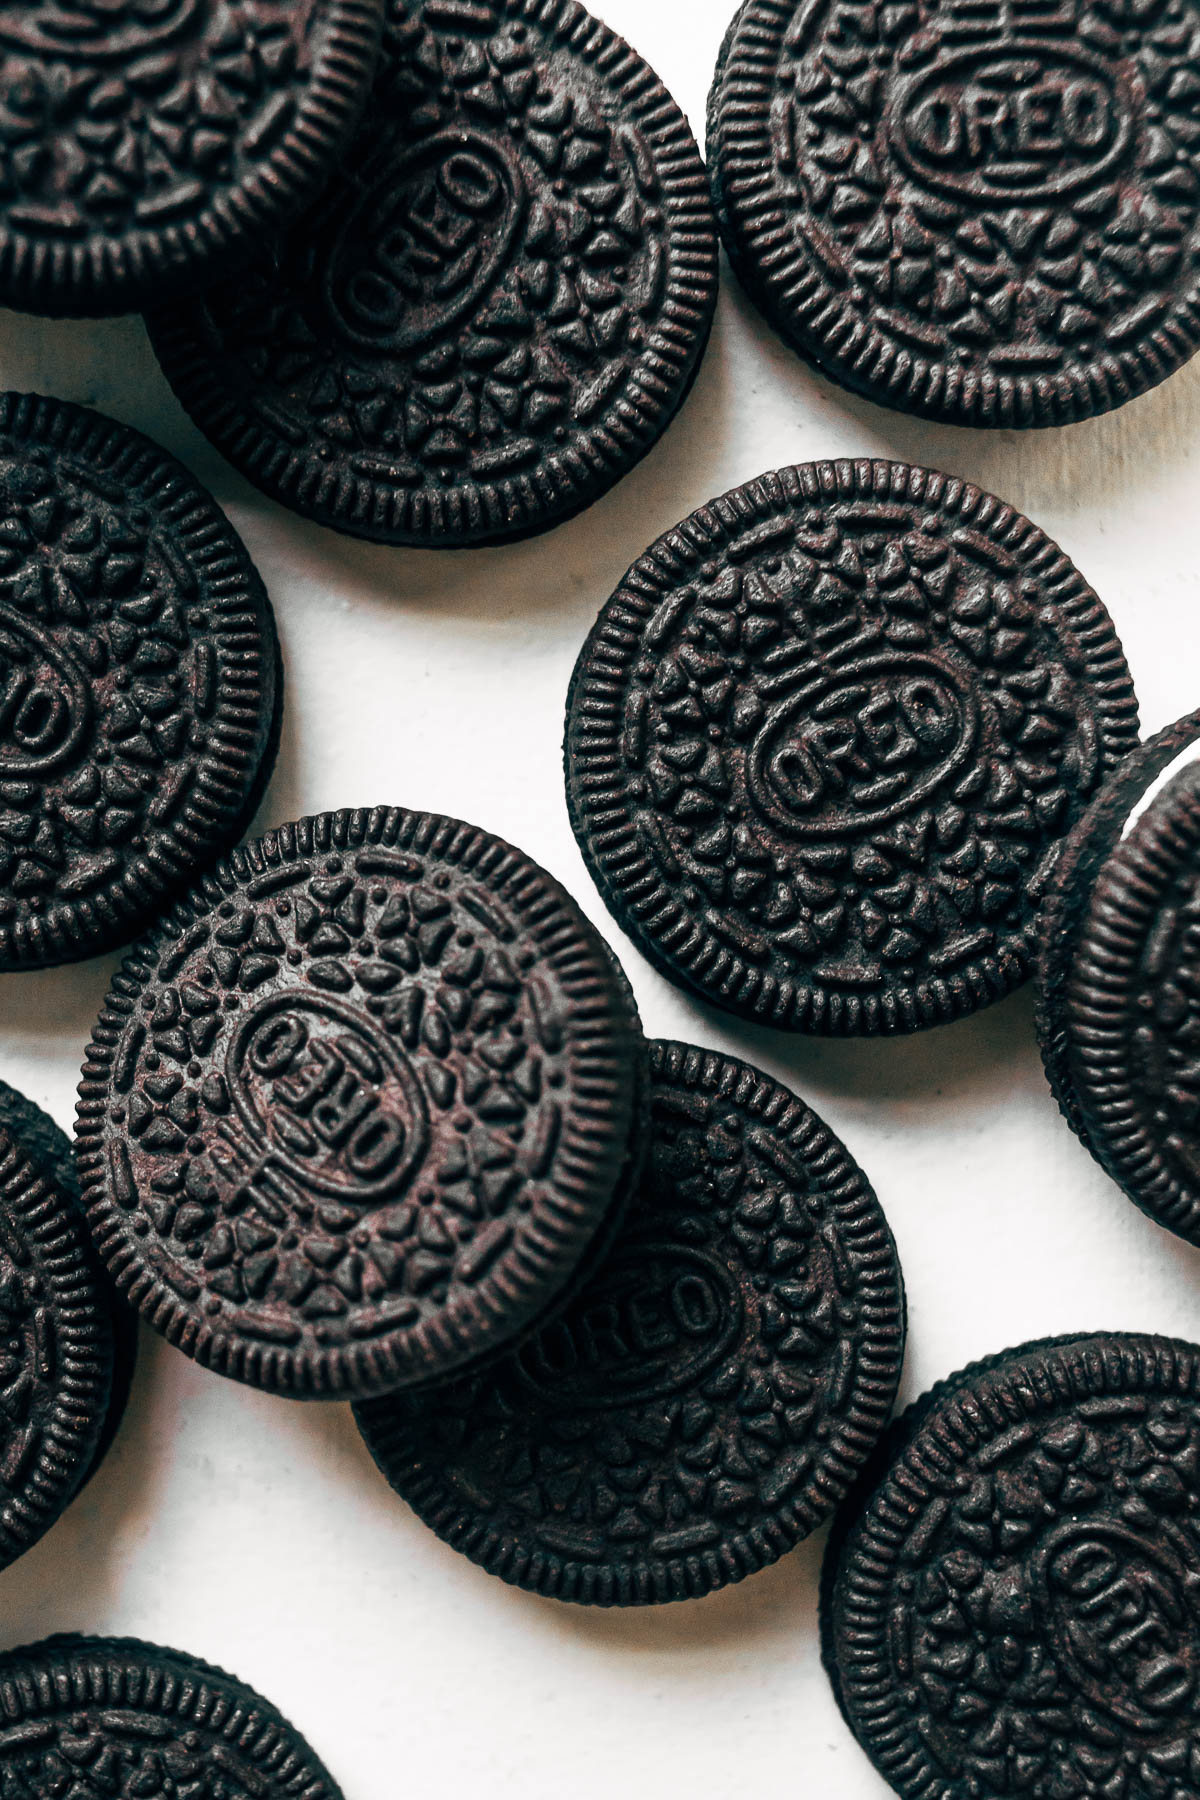 Overhead shot of Oreo cookies on a white surface.